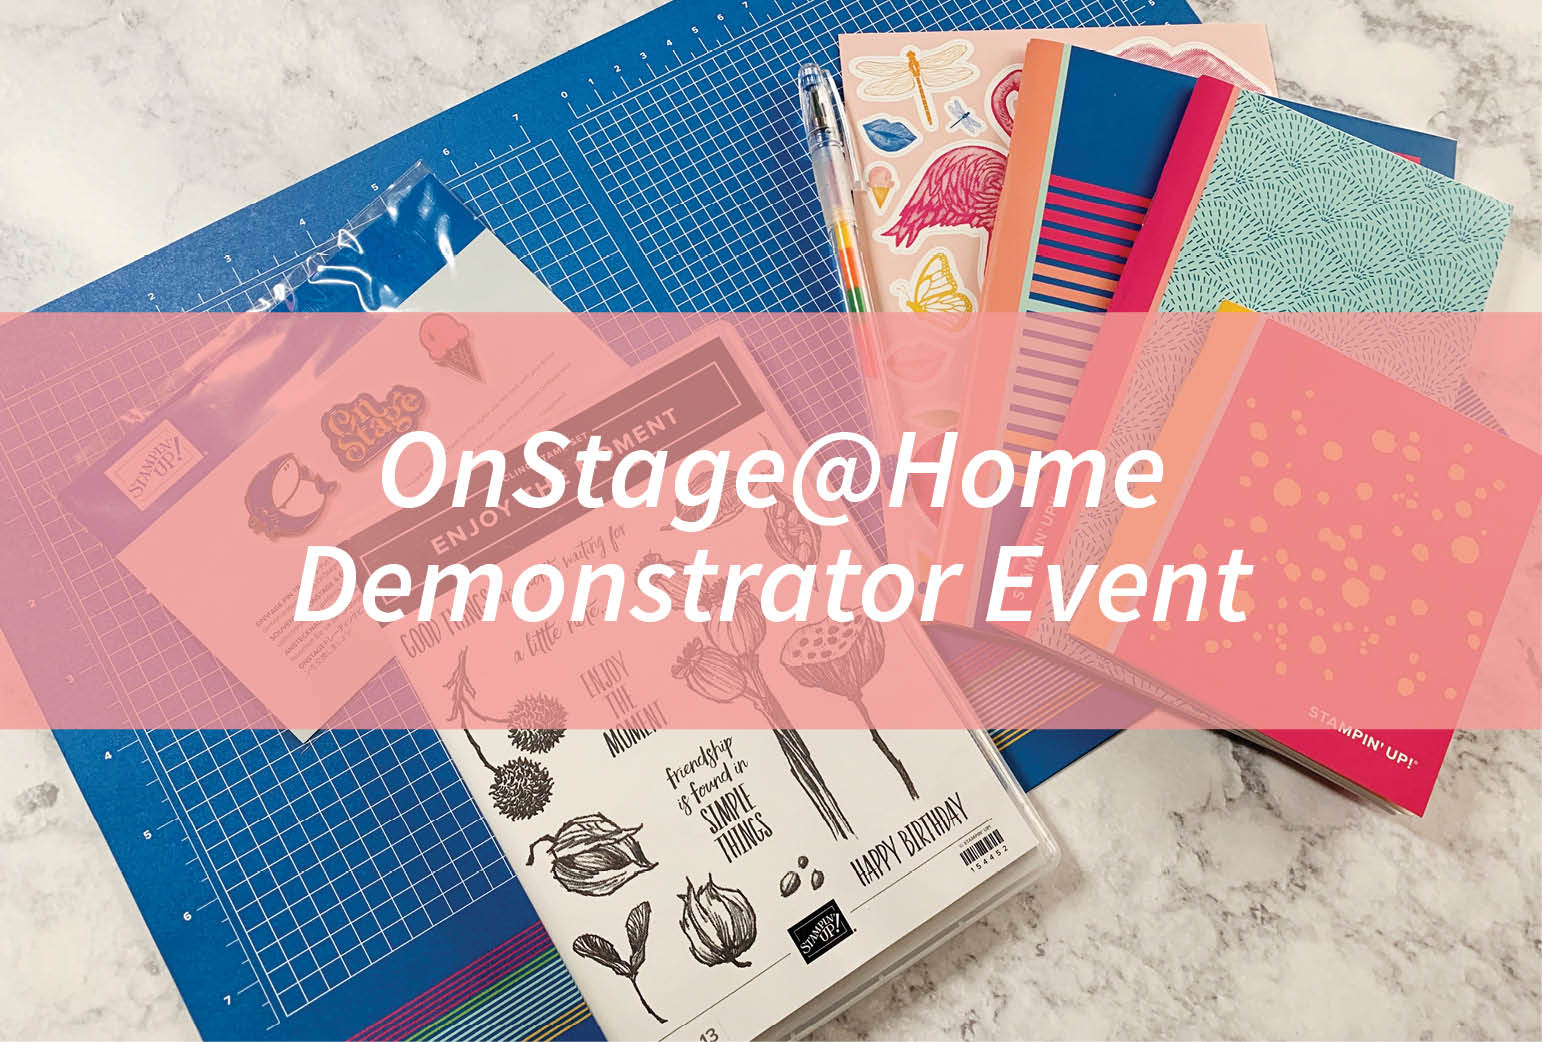 OnStage@Home Demonstrator Event